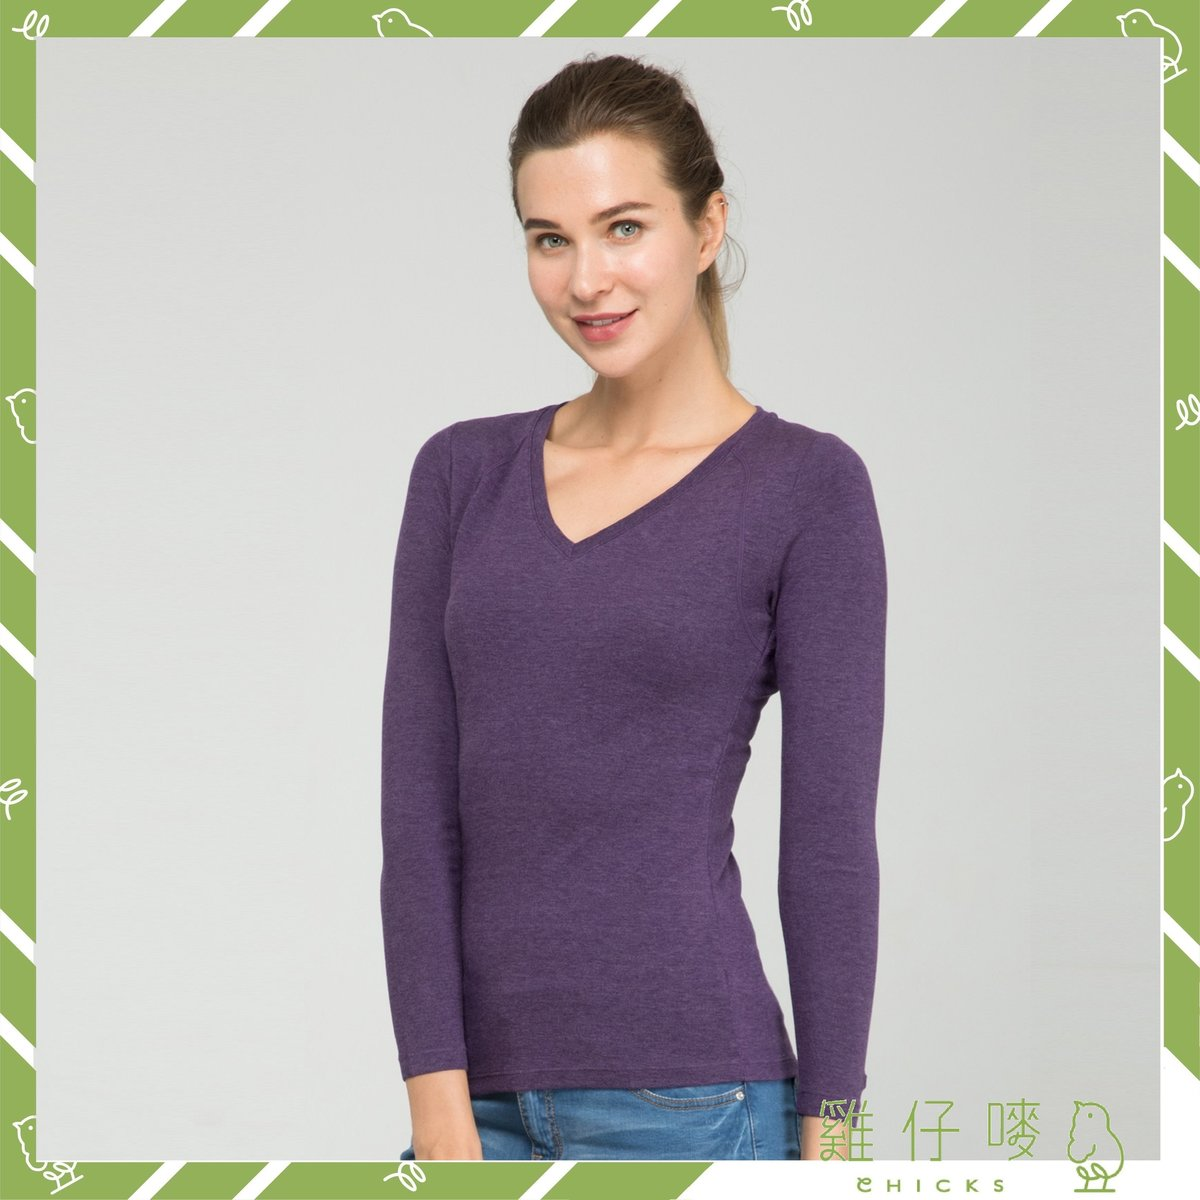 J-Fit Infra - Women V Neck Long Sleeves Top (Thermal) (Purple Grey) (Size L)